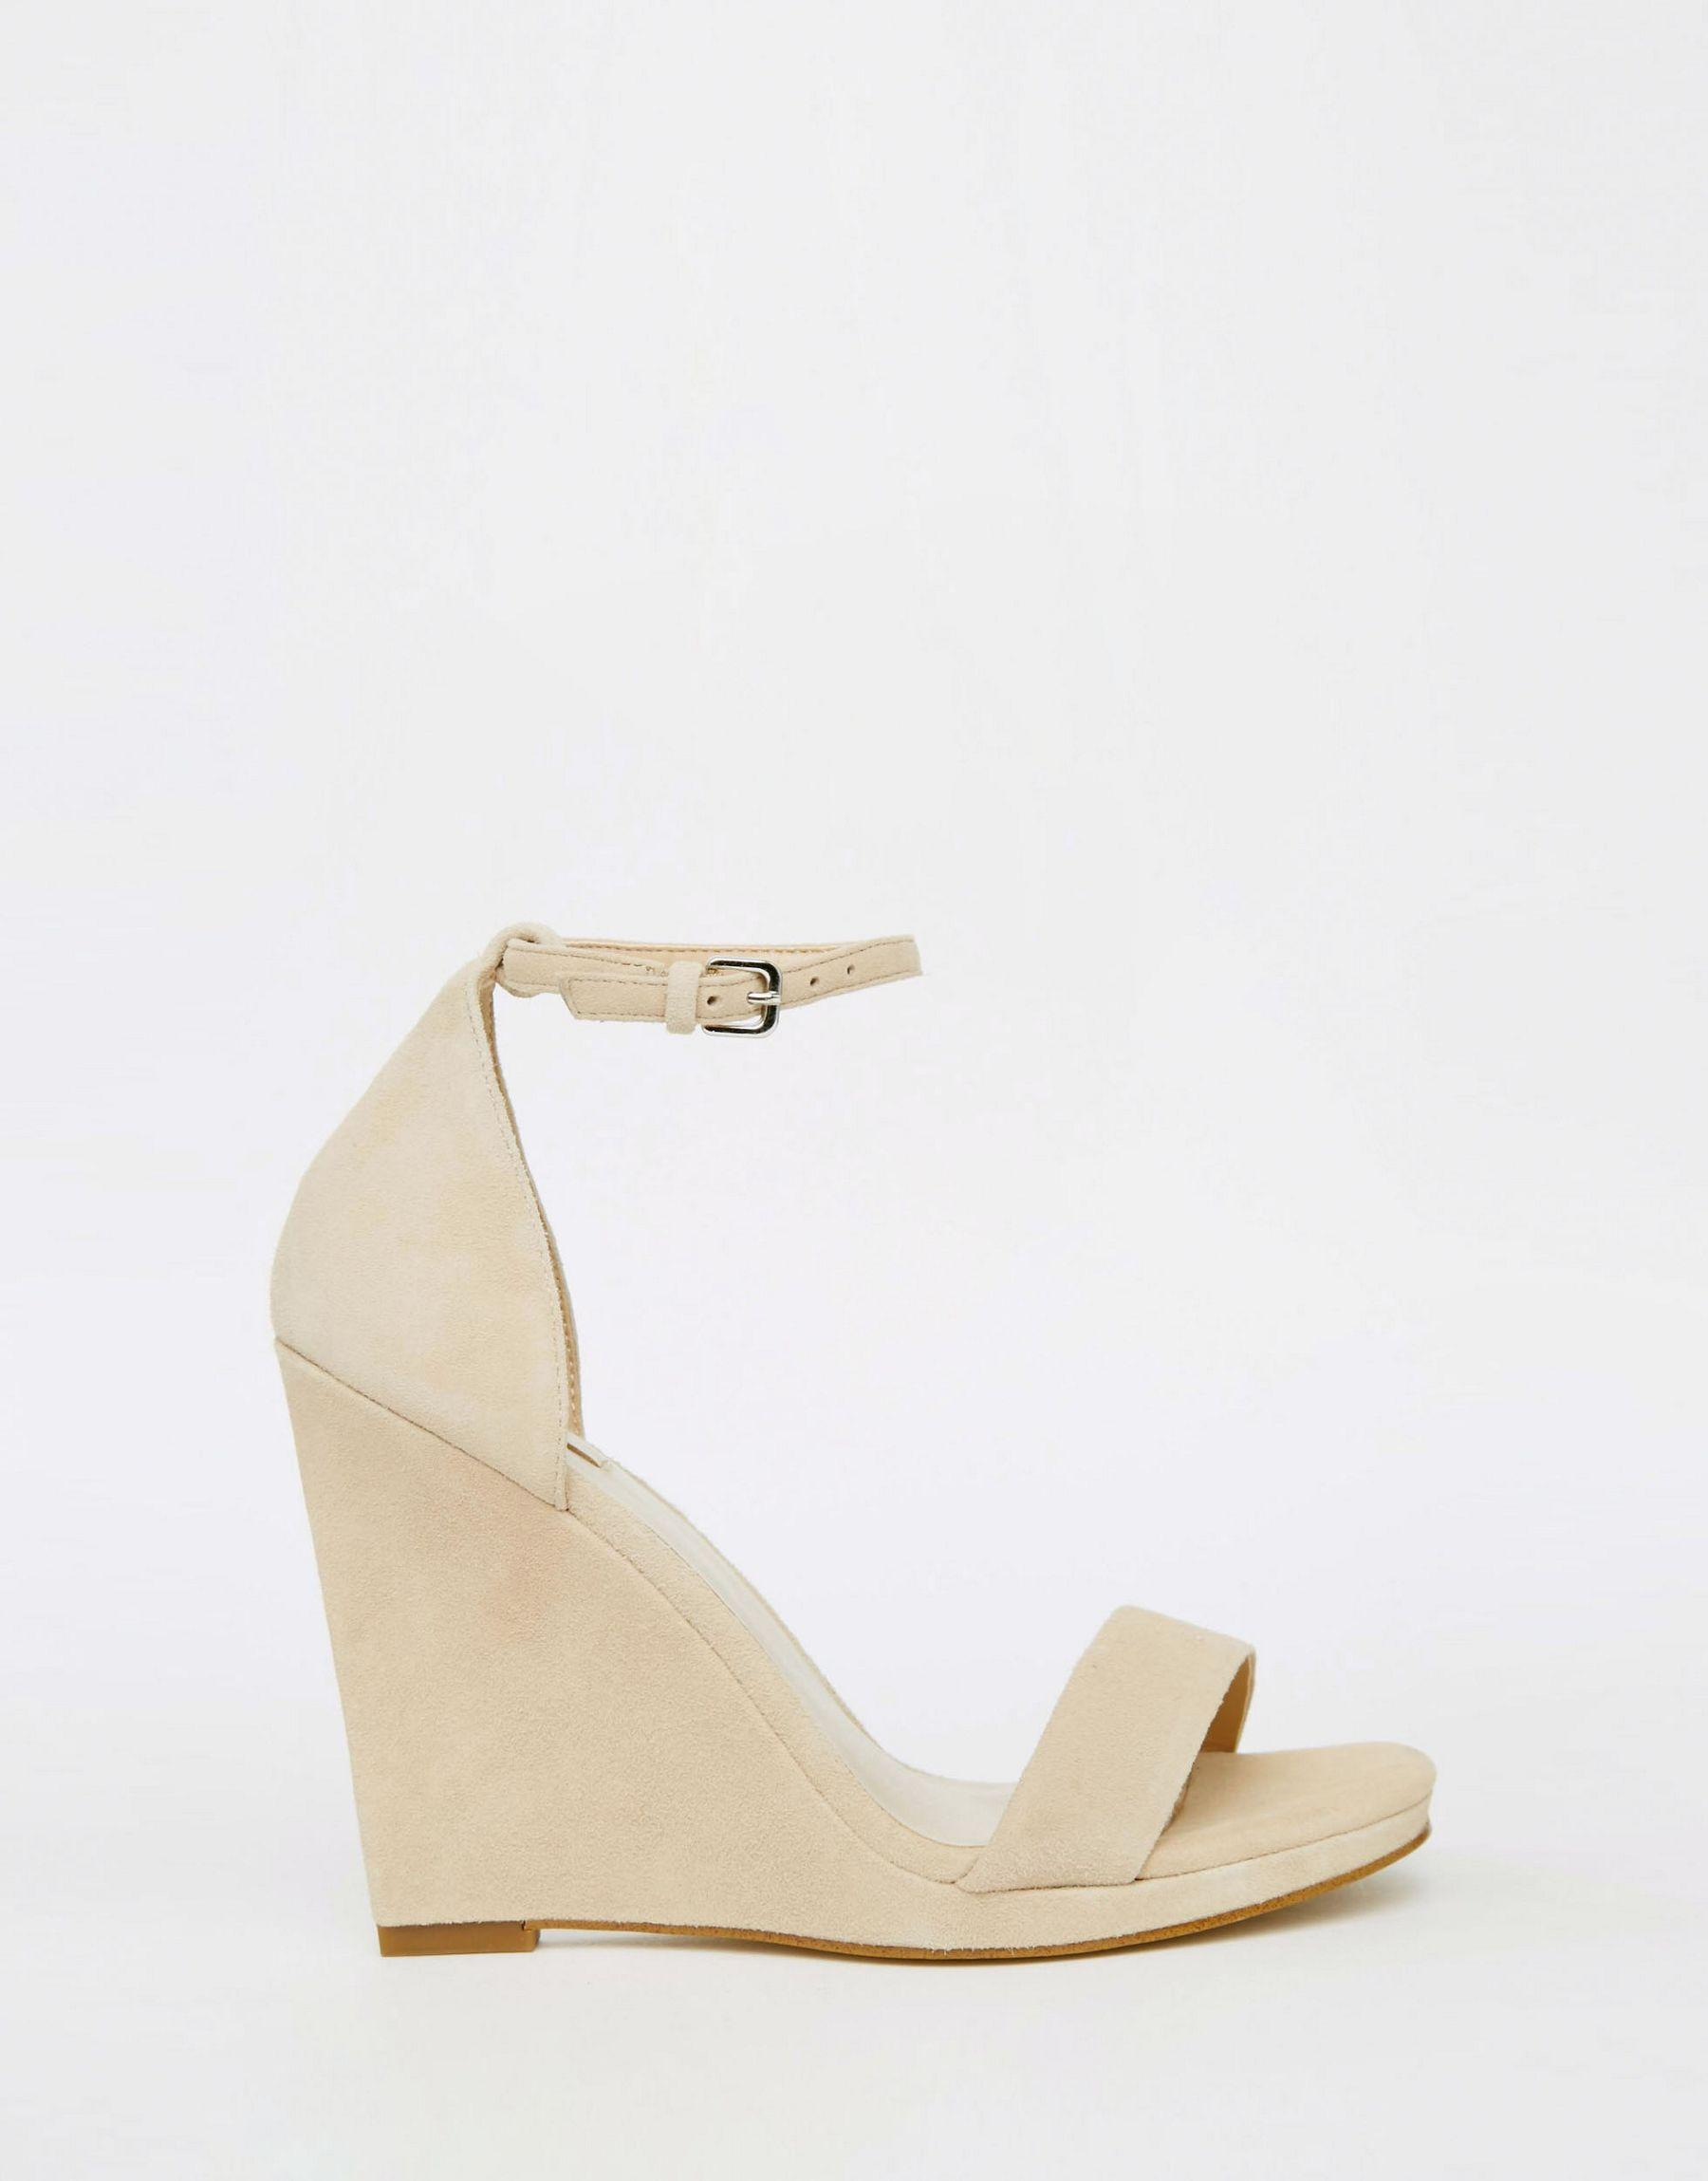 8a82a75efca6 Lyst - ALDO Ldo Elley Nude Wedge Sandals in Natural